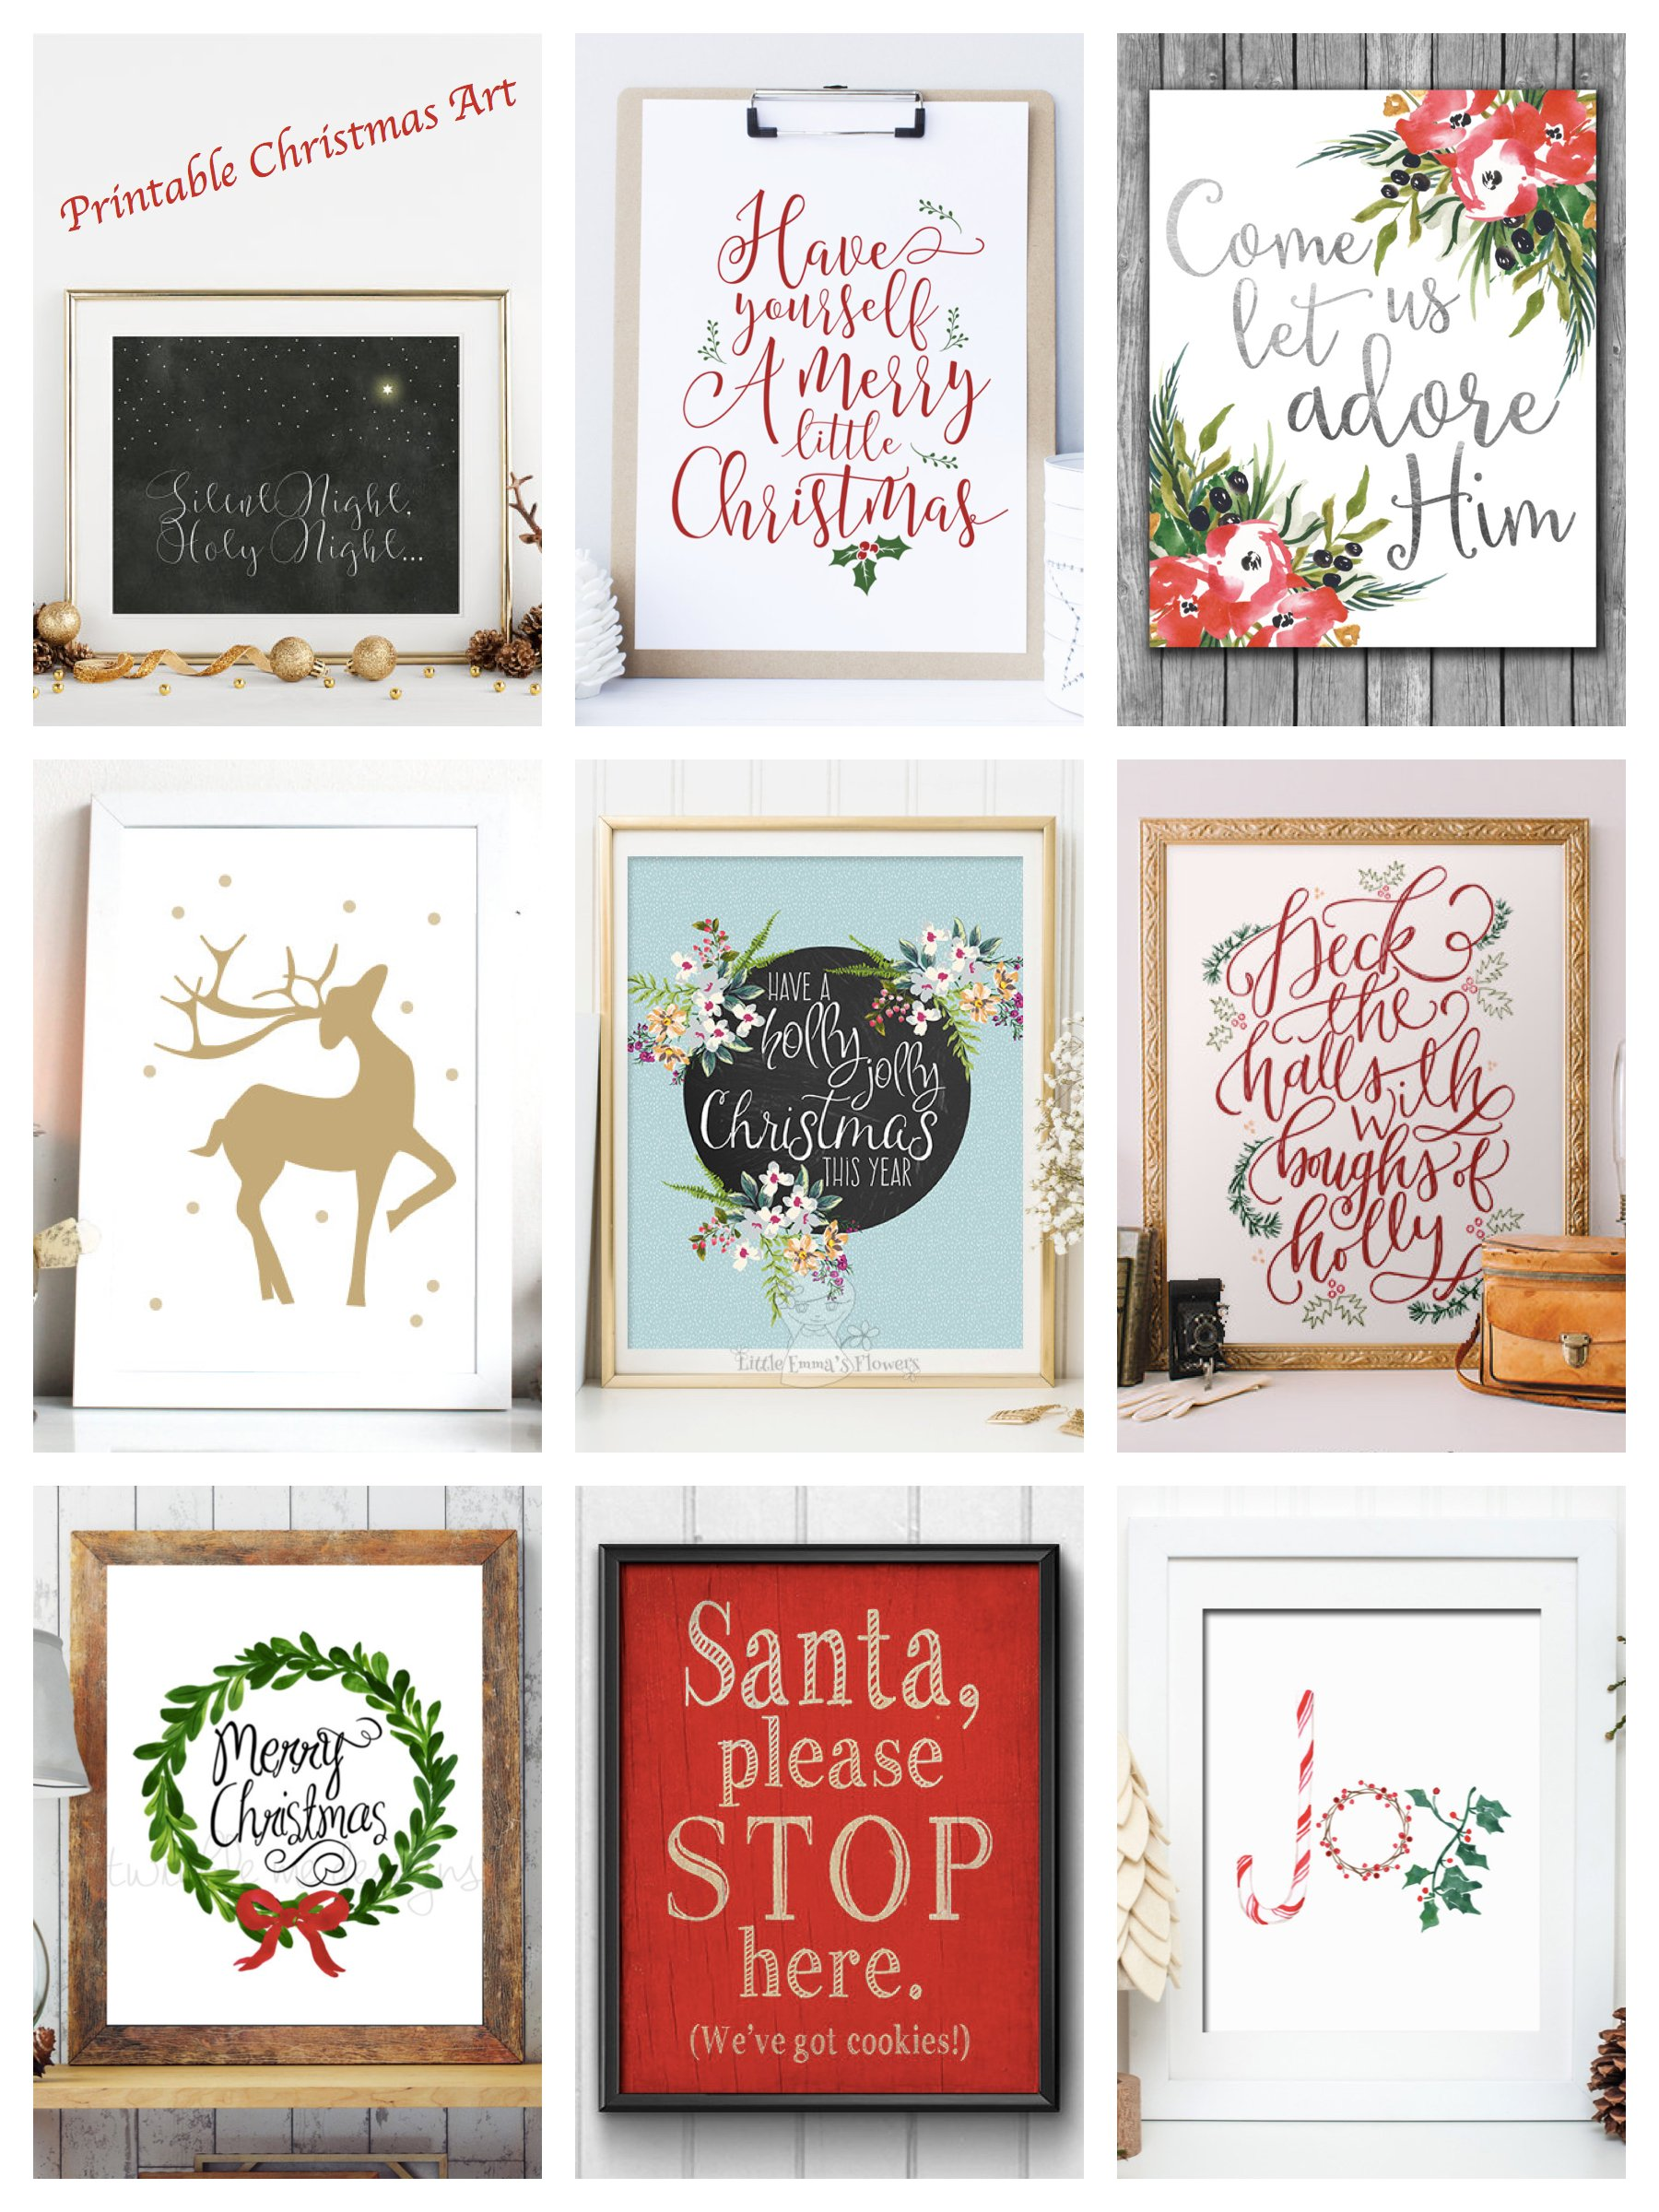 Printable Christmas Art, Printable Christmas Prints, Printable Christmas Decor